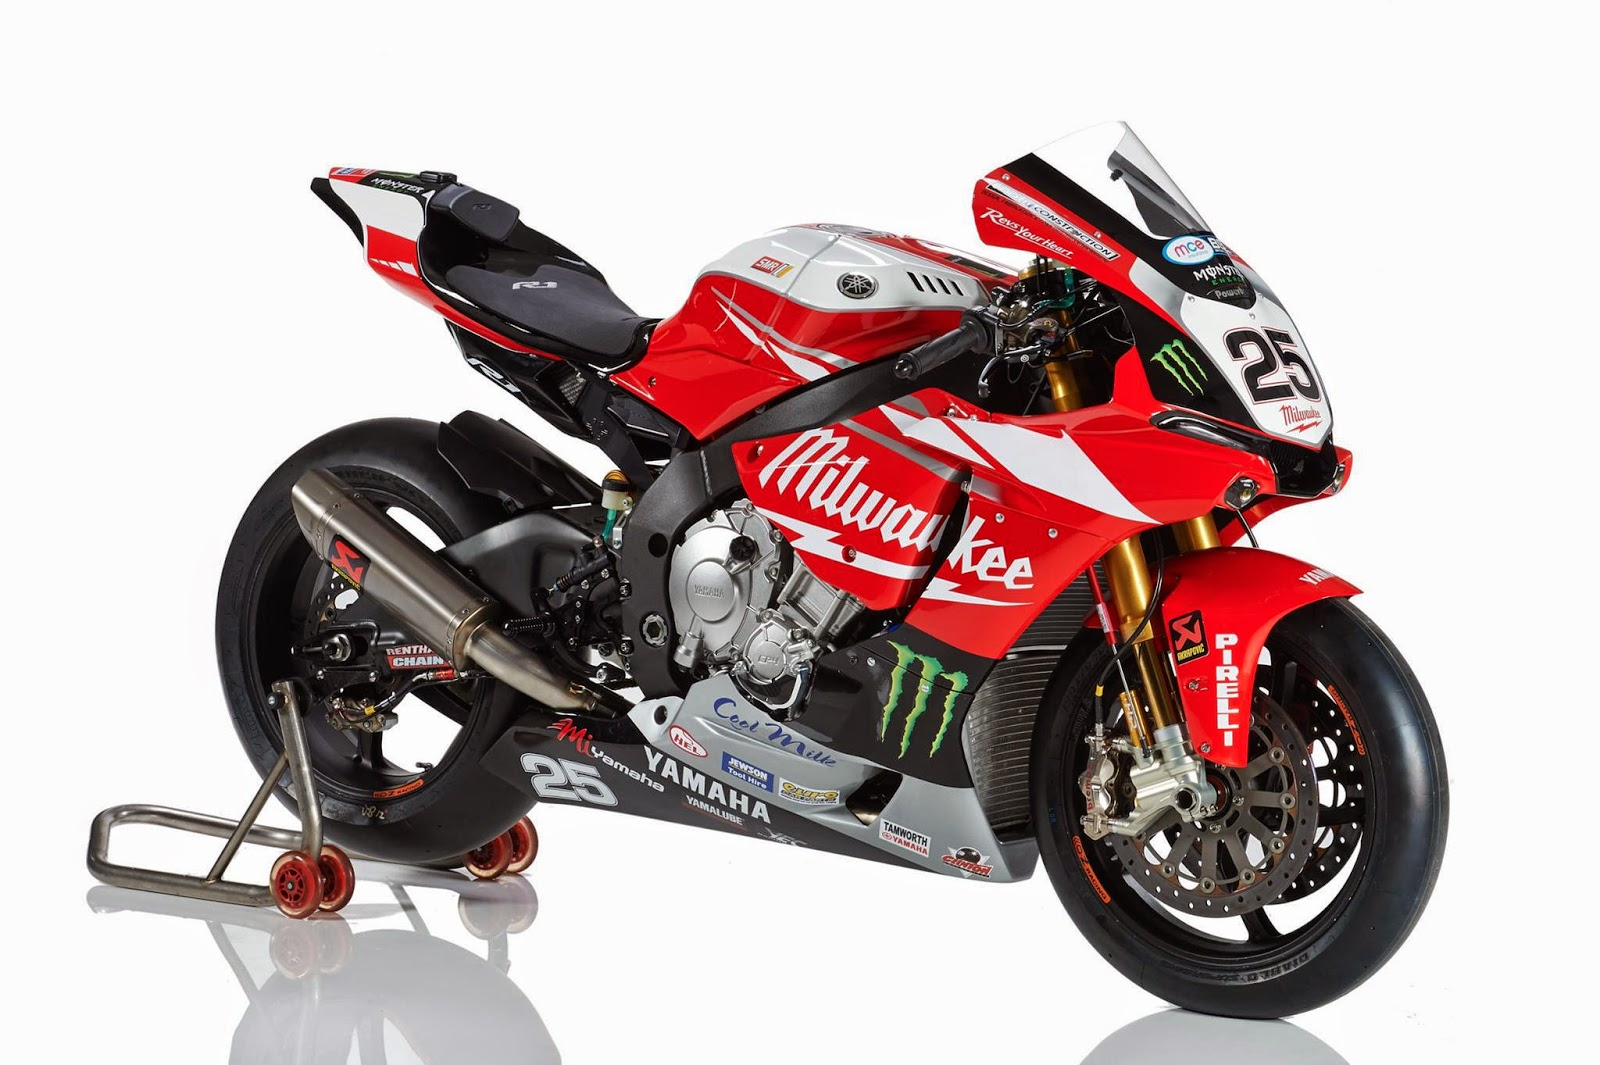 racing caf yamaha yzf r1 bsb team milwaukee yamaha 2015. Black Bedroom Furniture Sets. Home Design Ideas